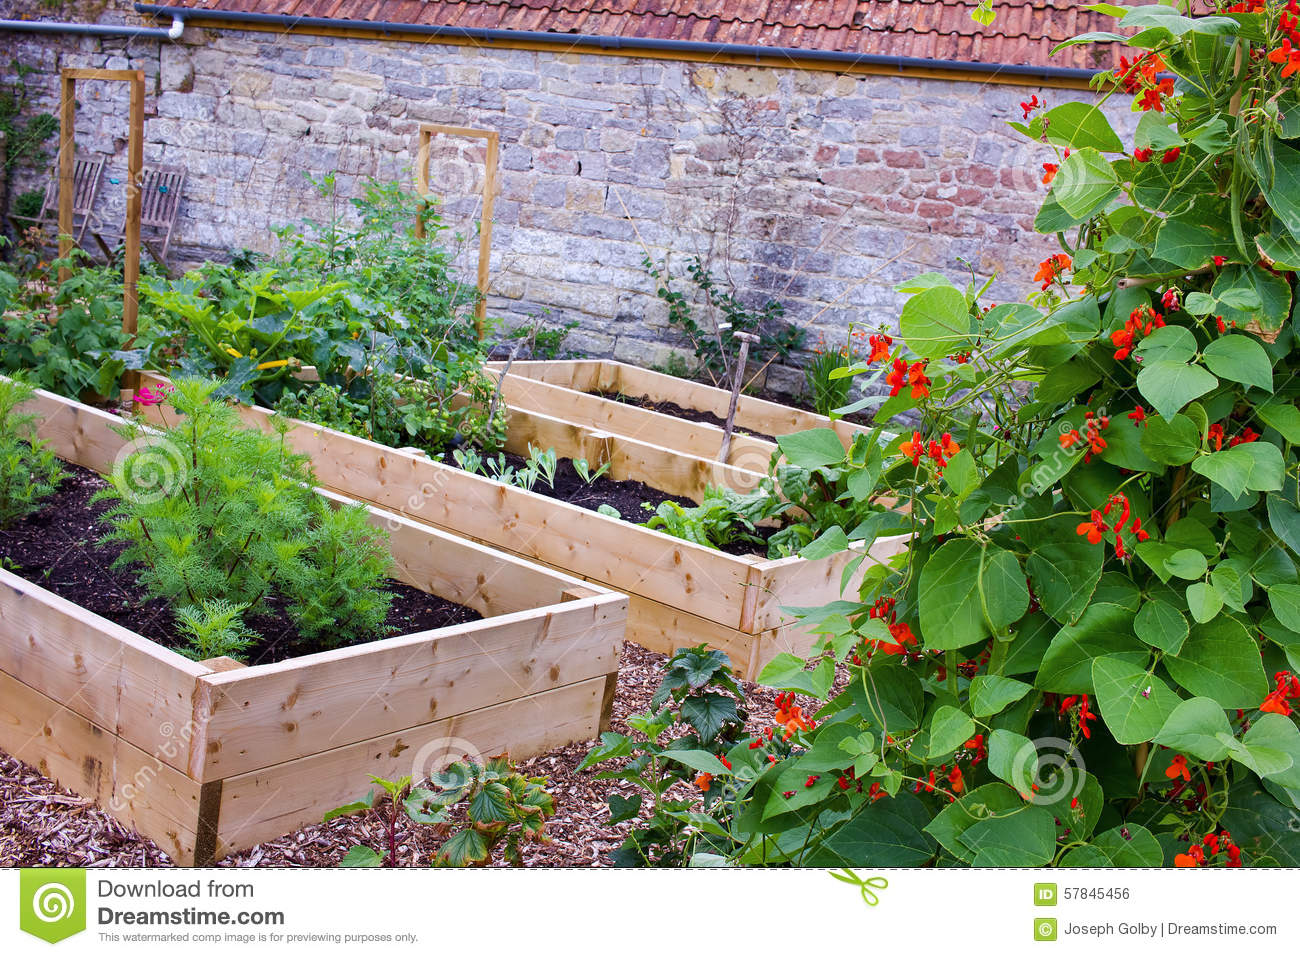 Country vegetable gardens - Rustic Country Vegetable Flower Garden With Raised Beds Royalty Free Stock Image